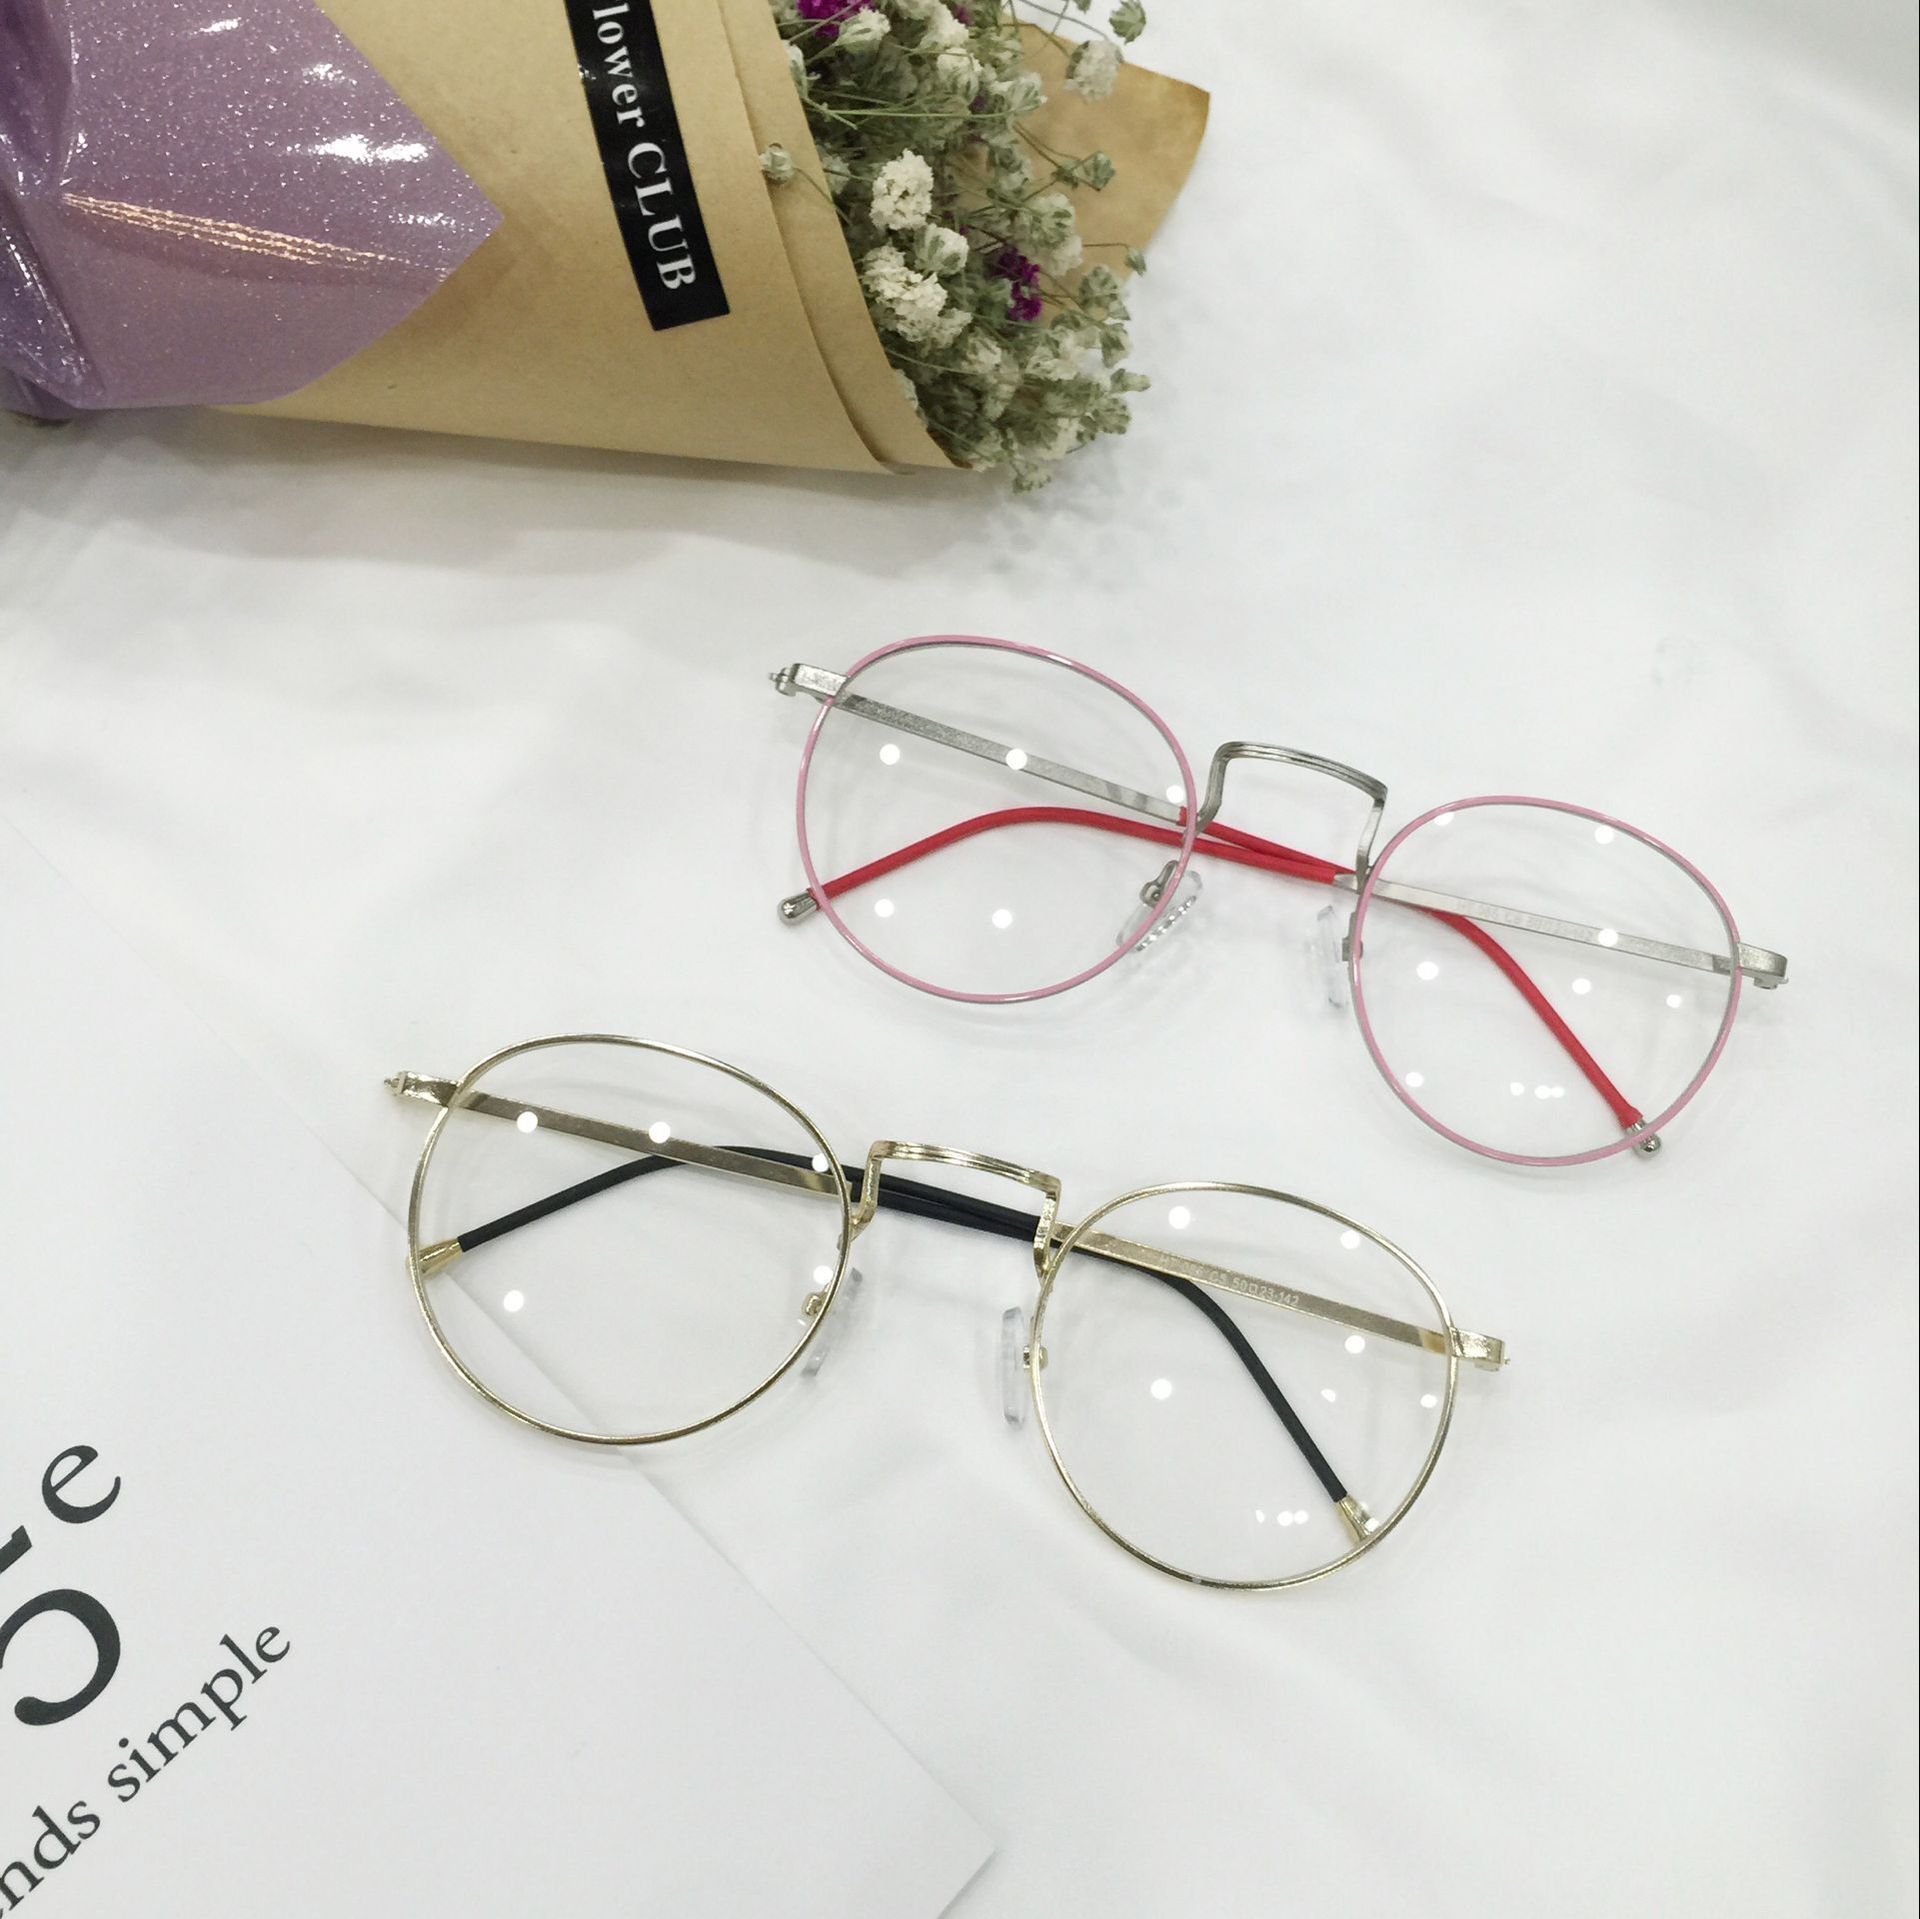 Glasses New Sunglasses Gradient Sunglass QRQ-01-QRQ-10